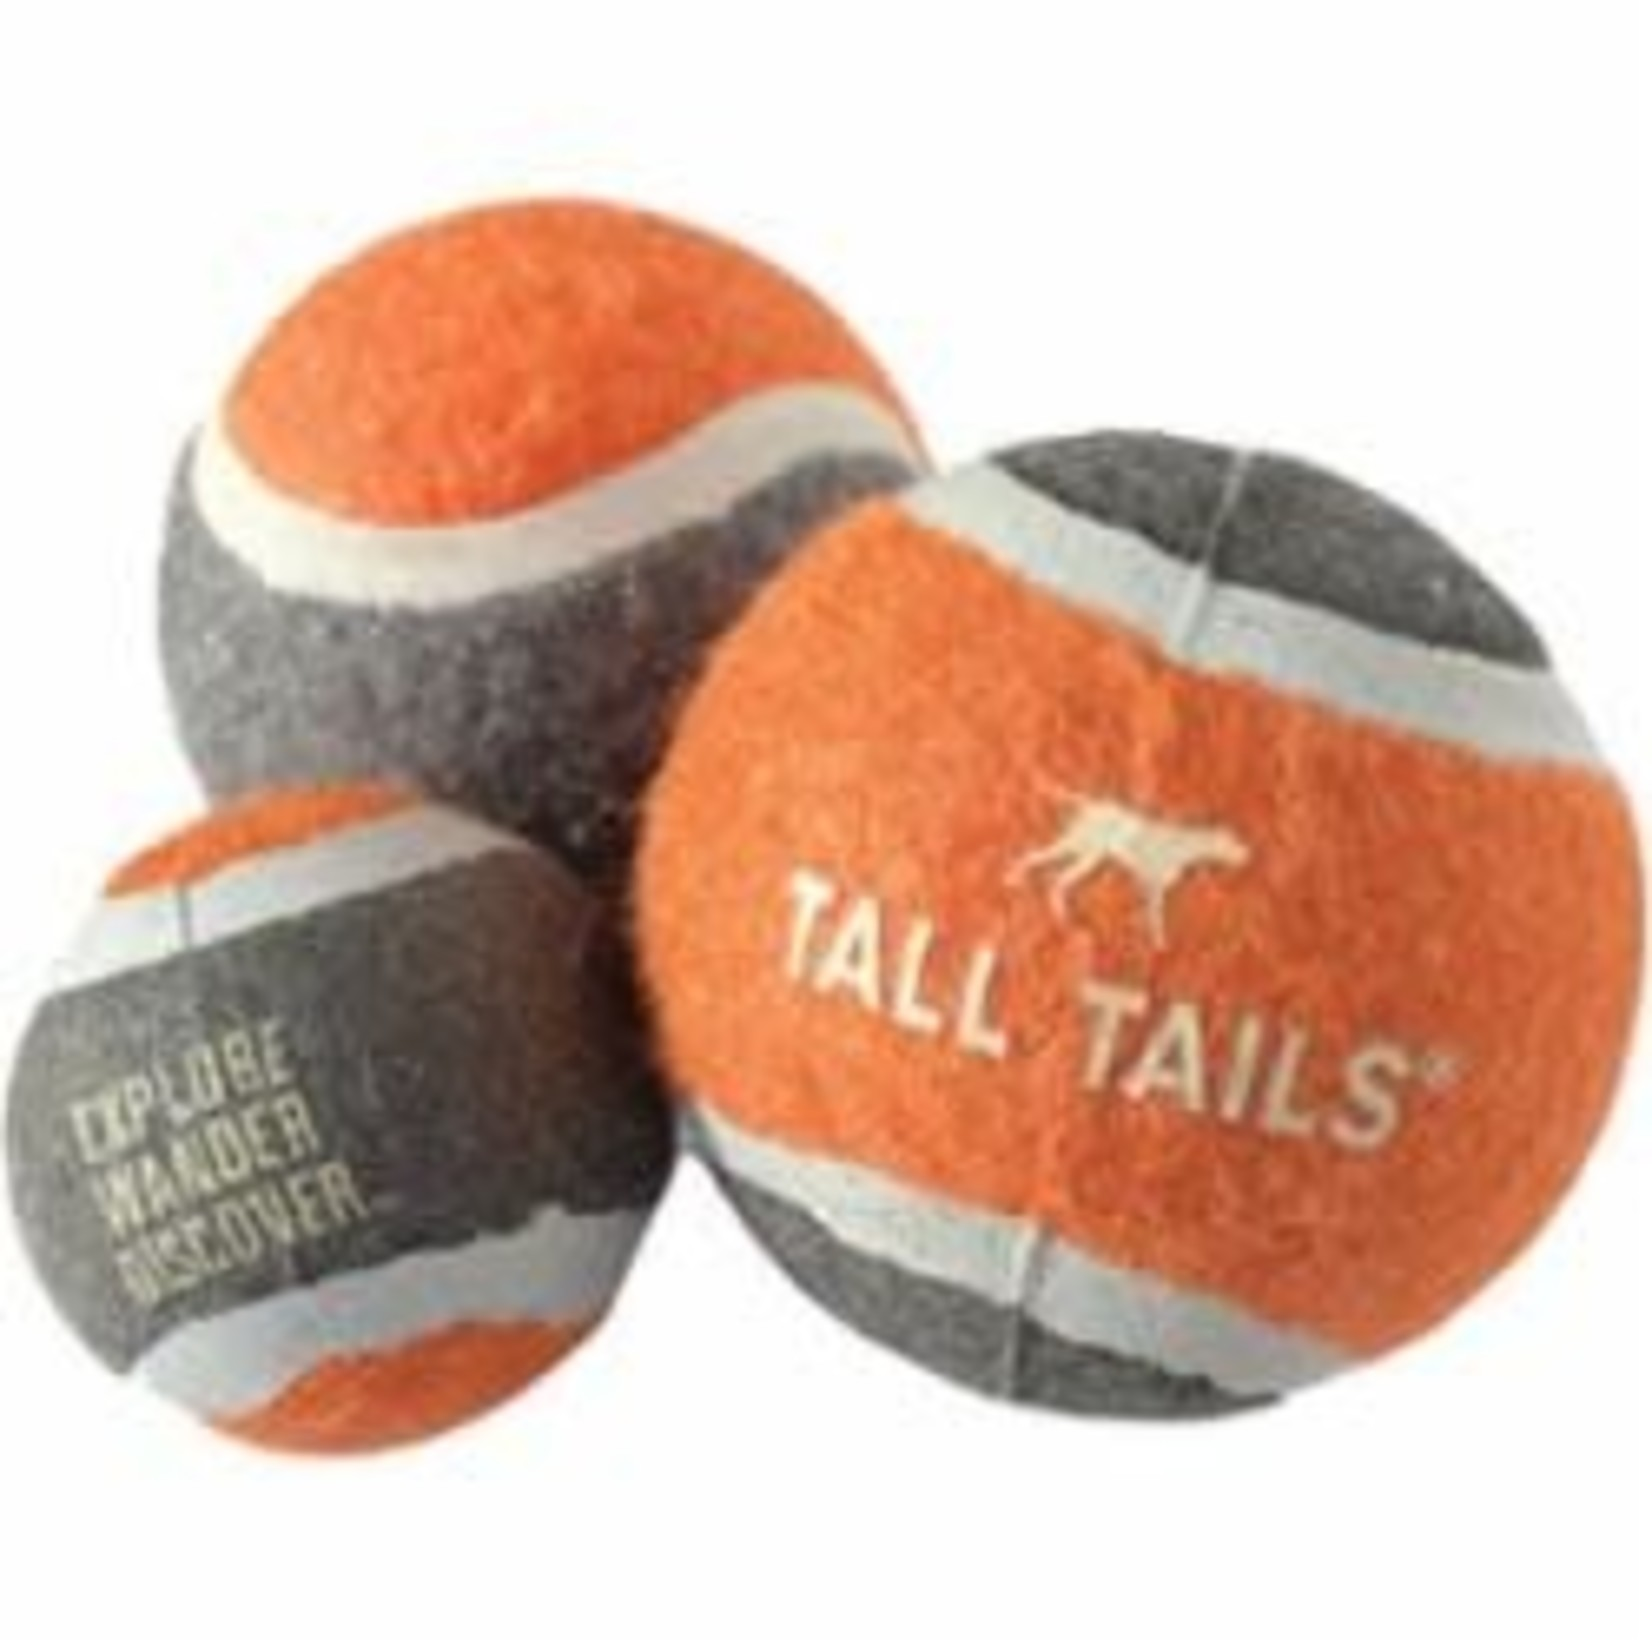 Tall Tails Tall Tails Dog Sport Ball Single Medium